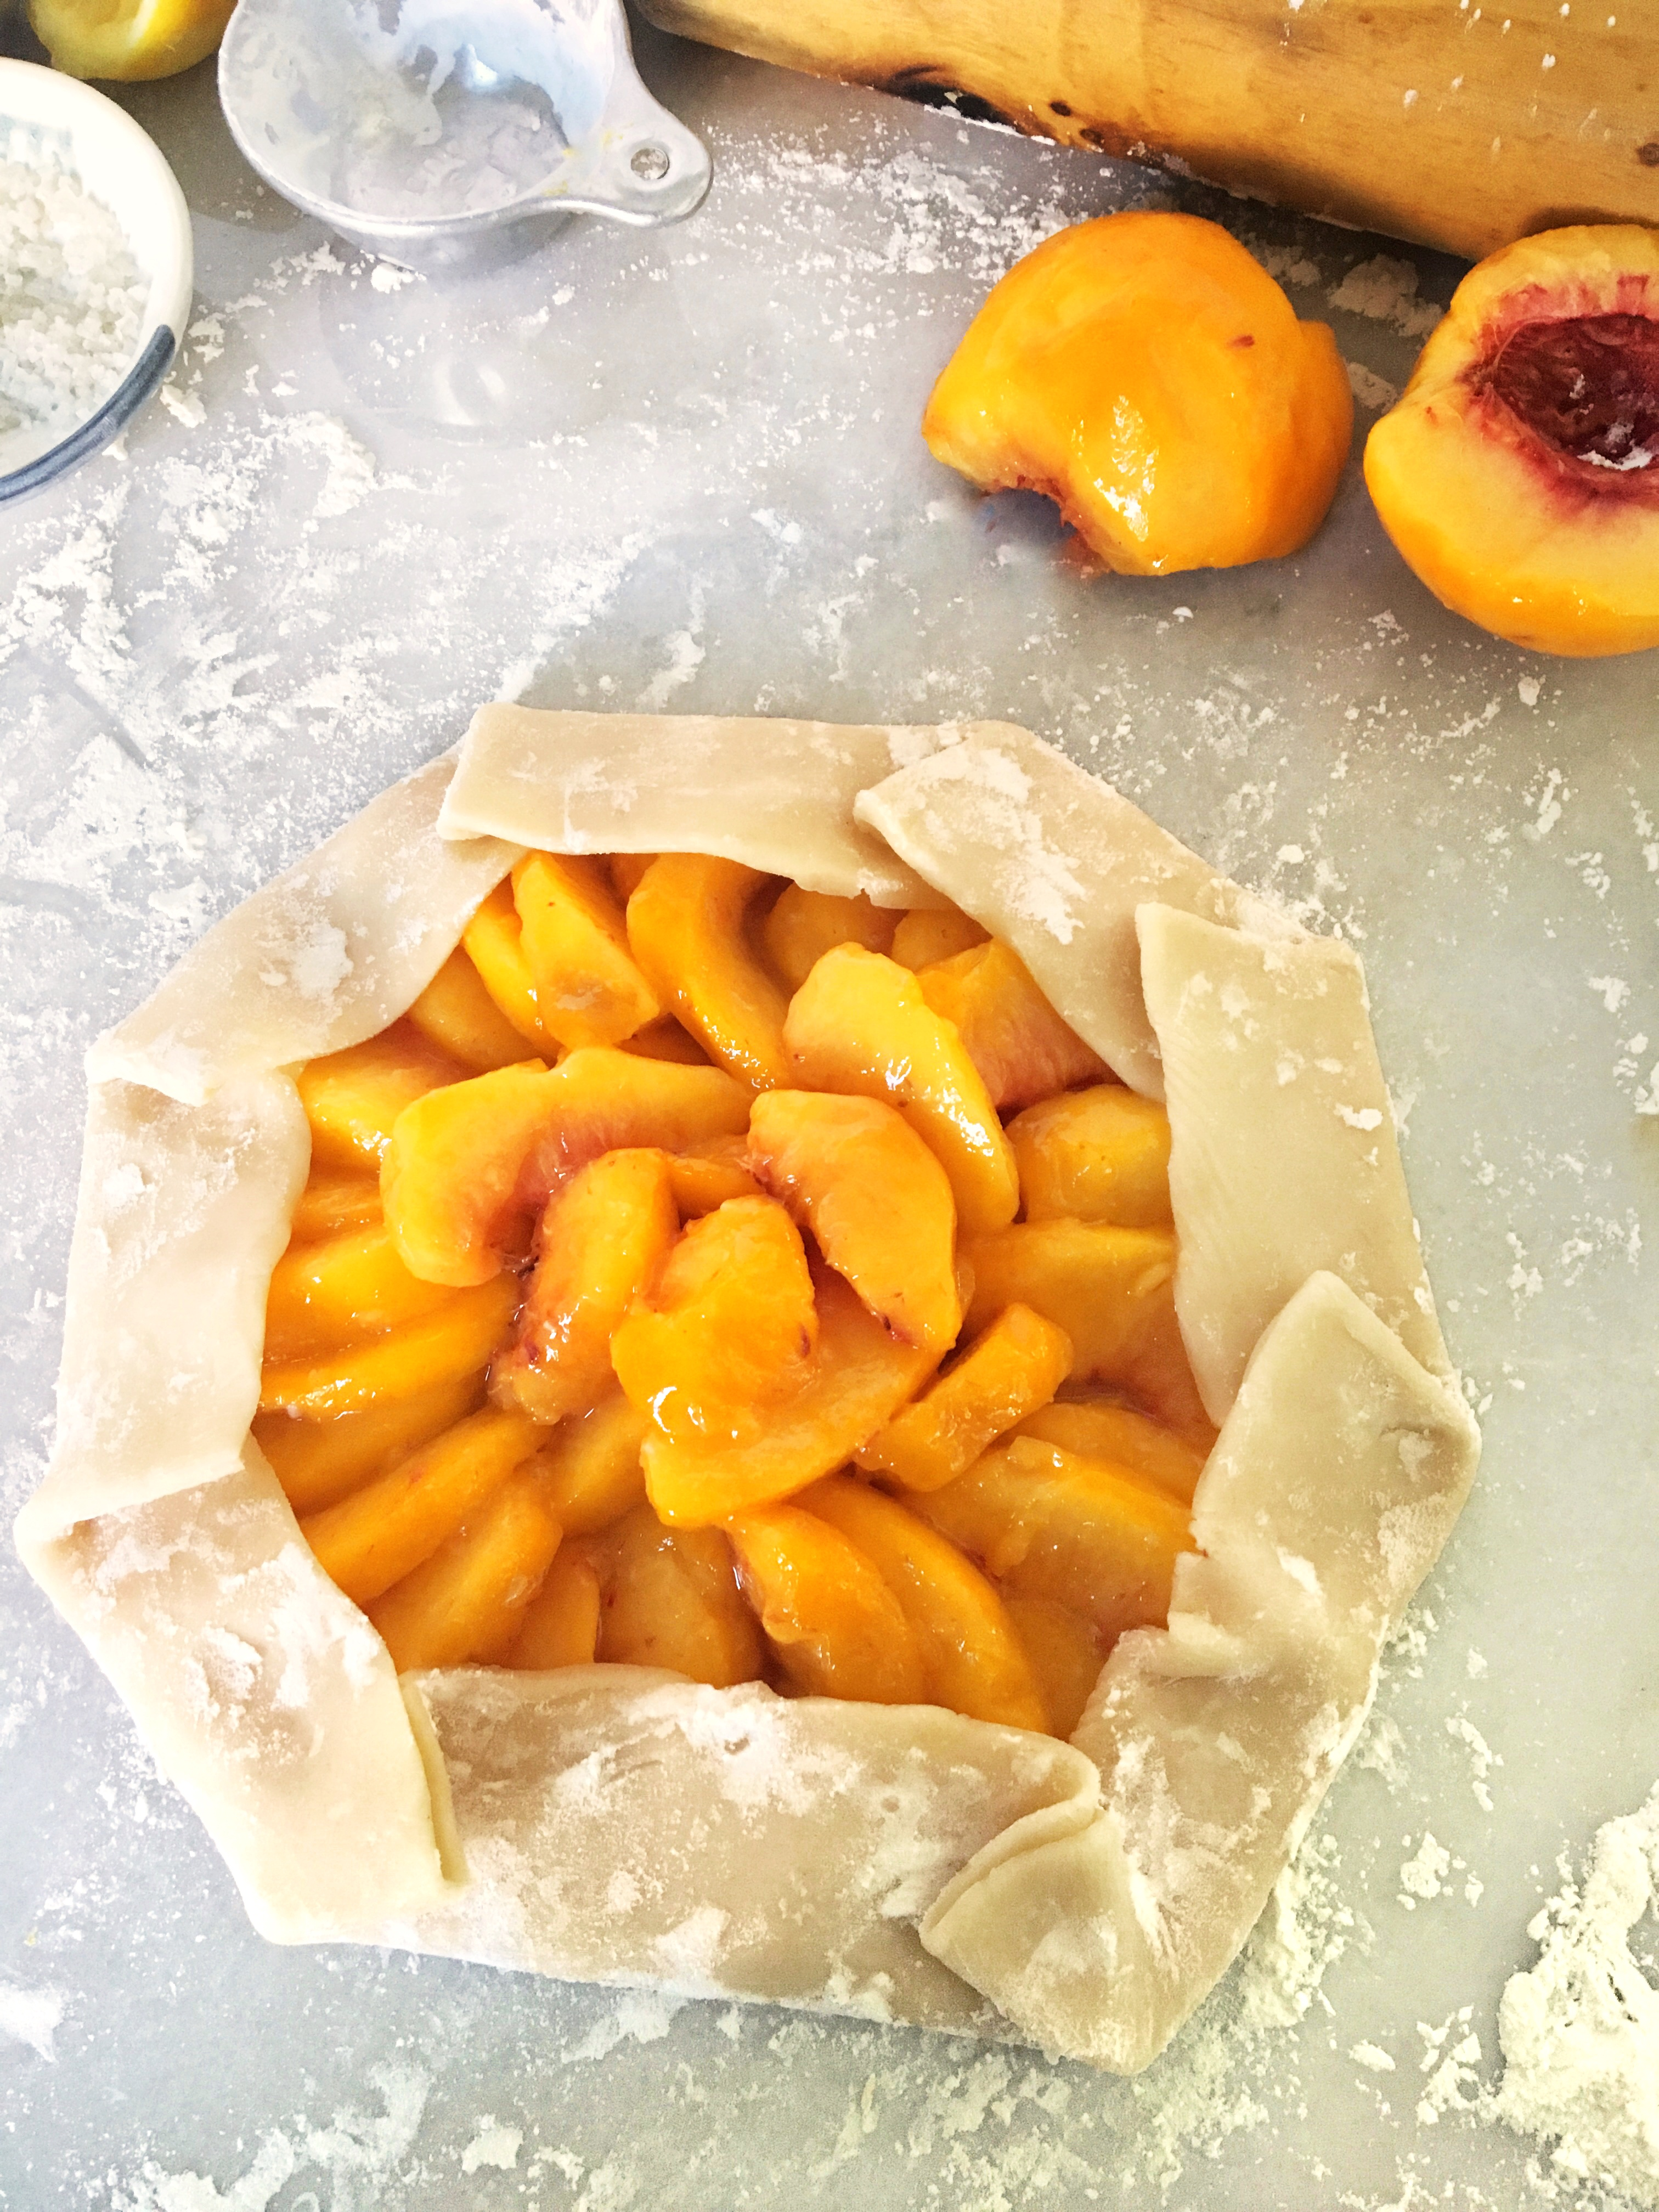 Fresh peaches arranged in a pastry crust